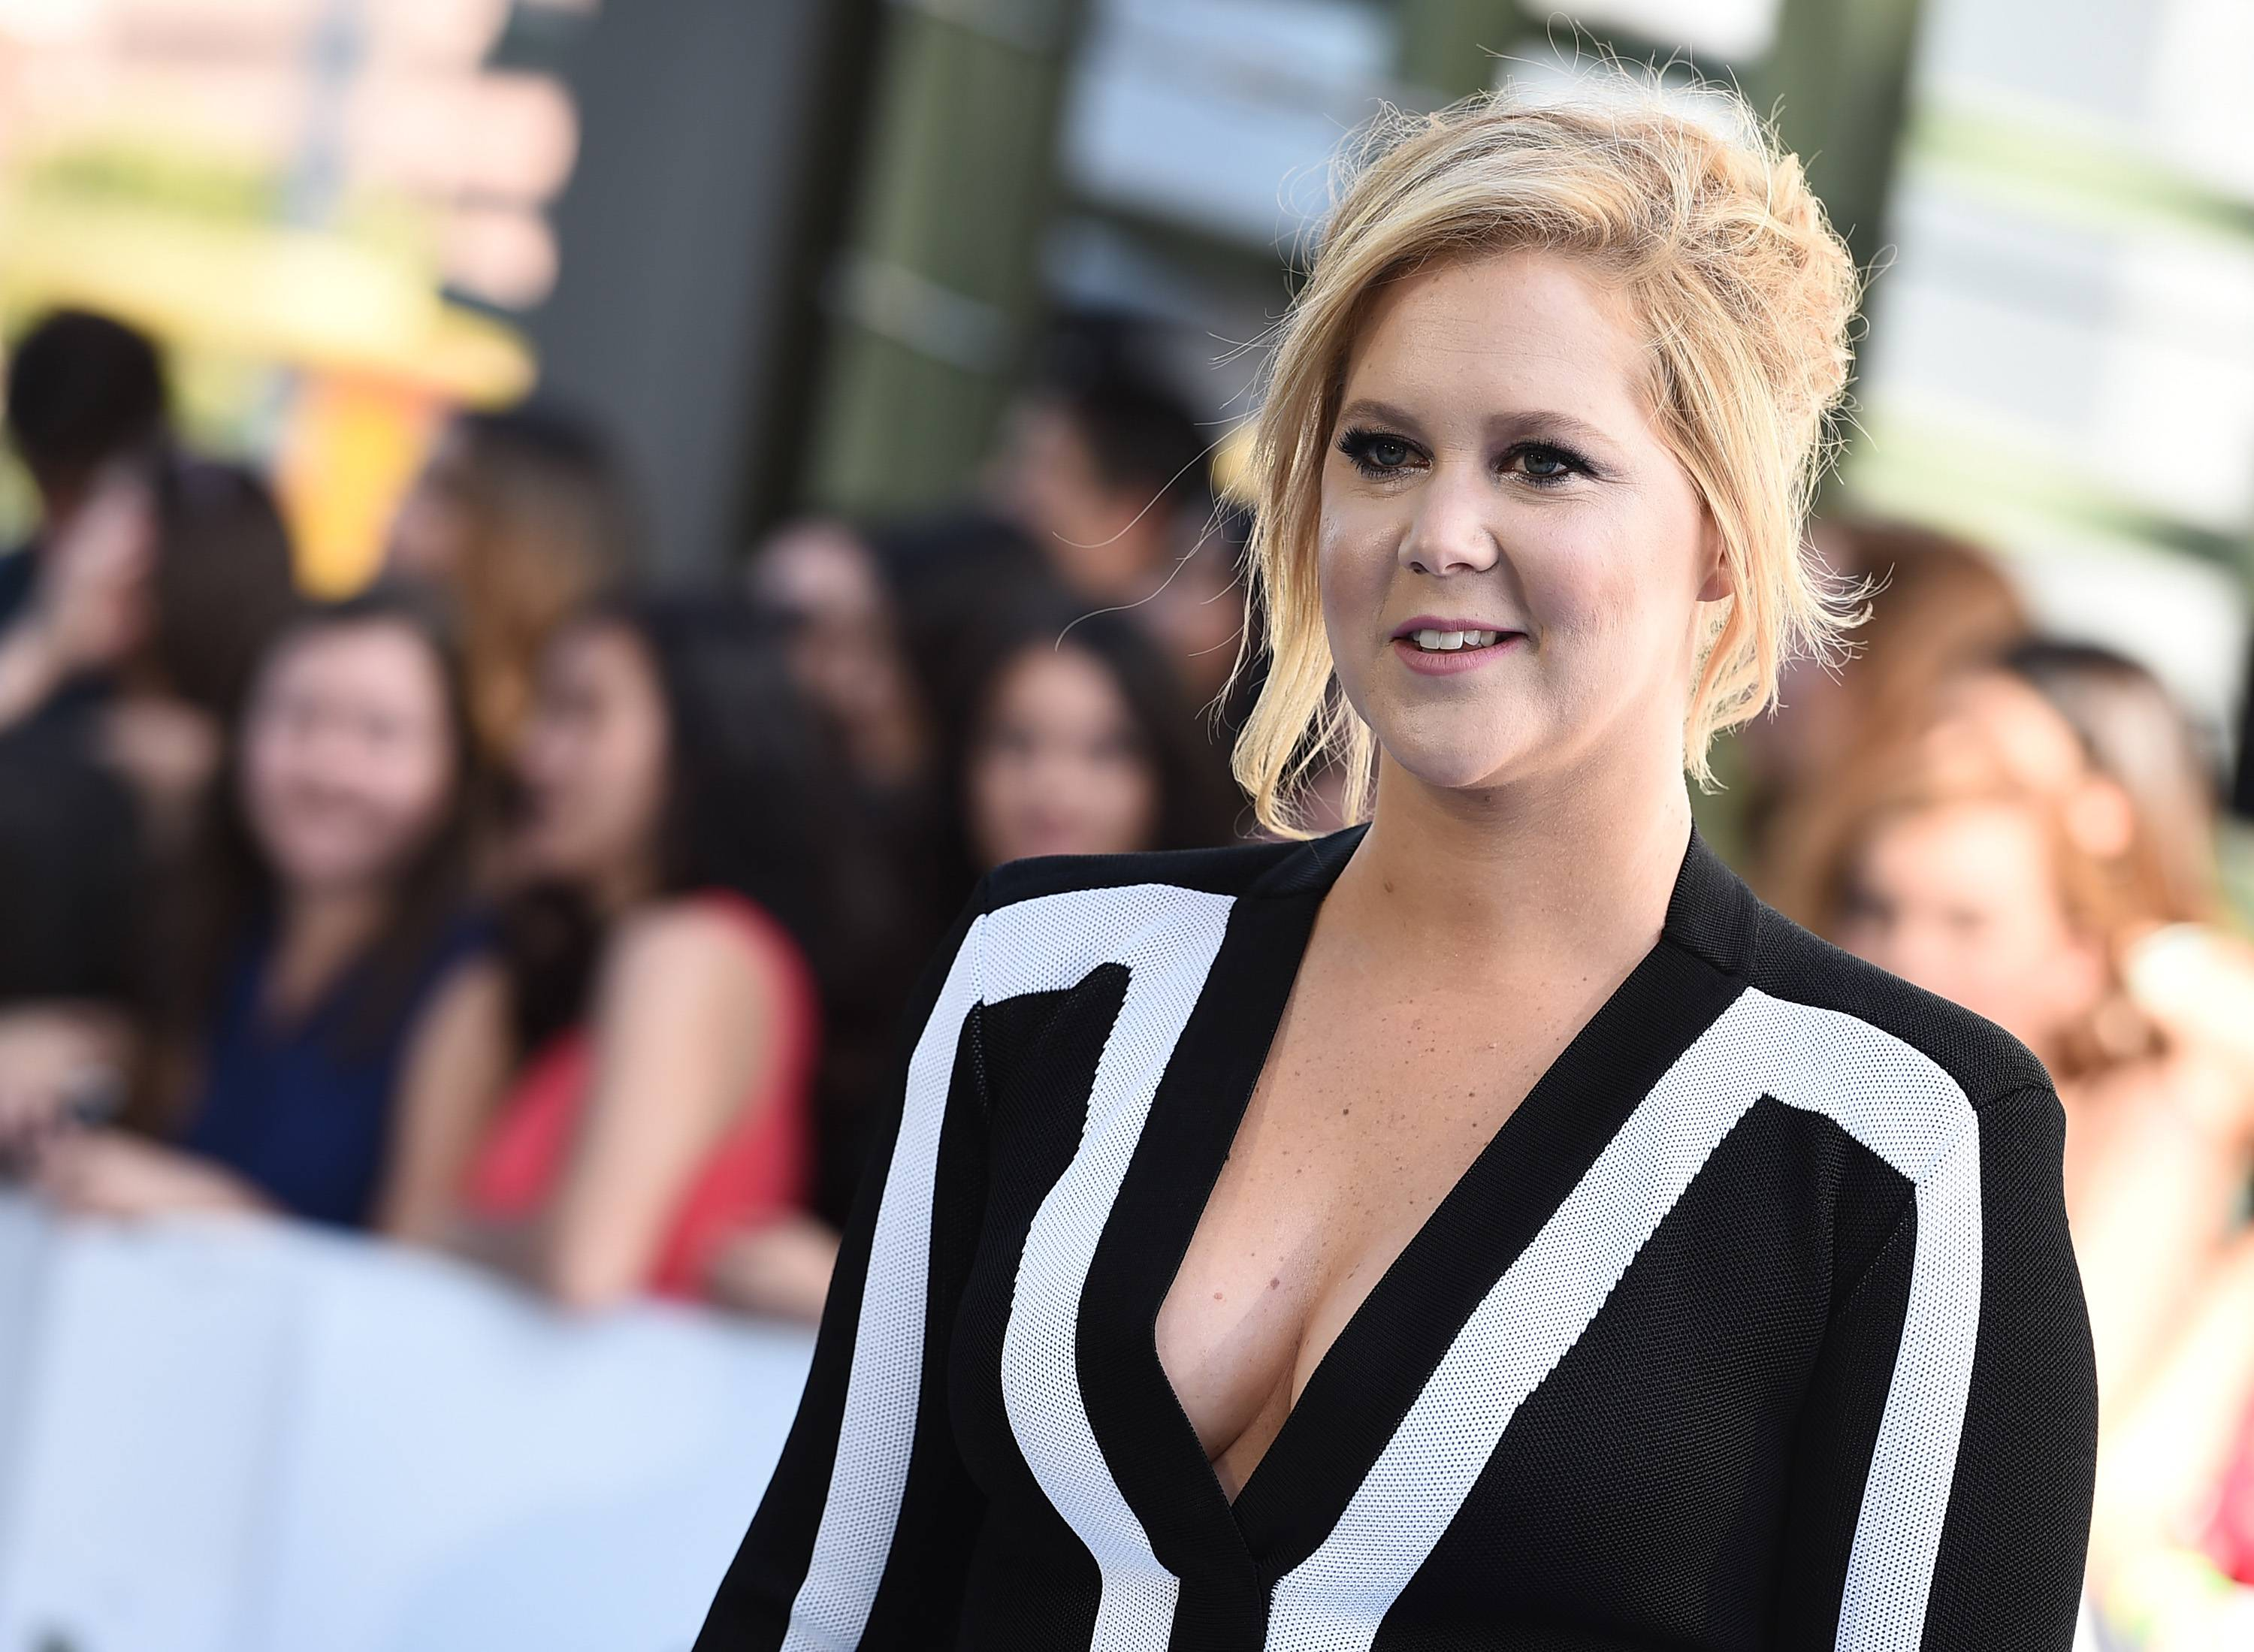 Host Amy Schumer arrives at the MTV Movie Awards at the Nokia Theatre on Sunday in Los Angeles.